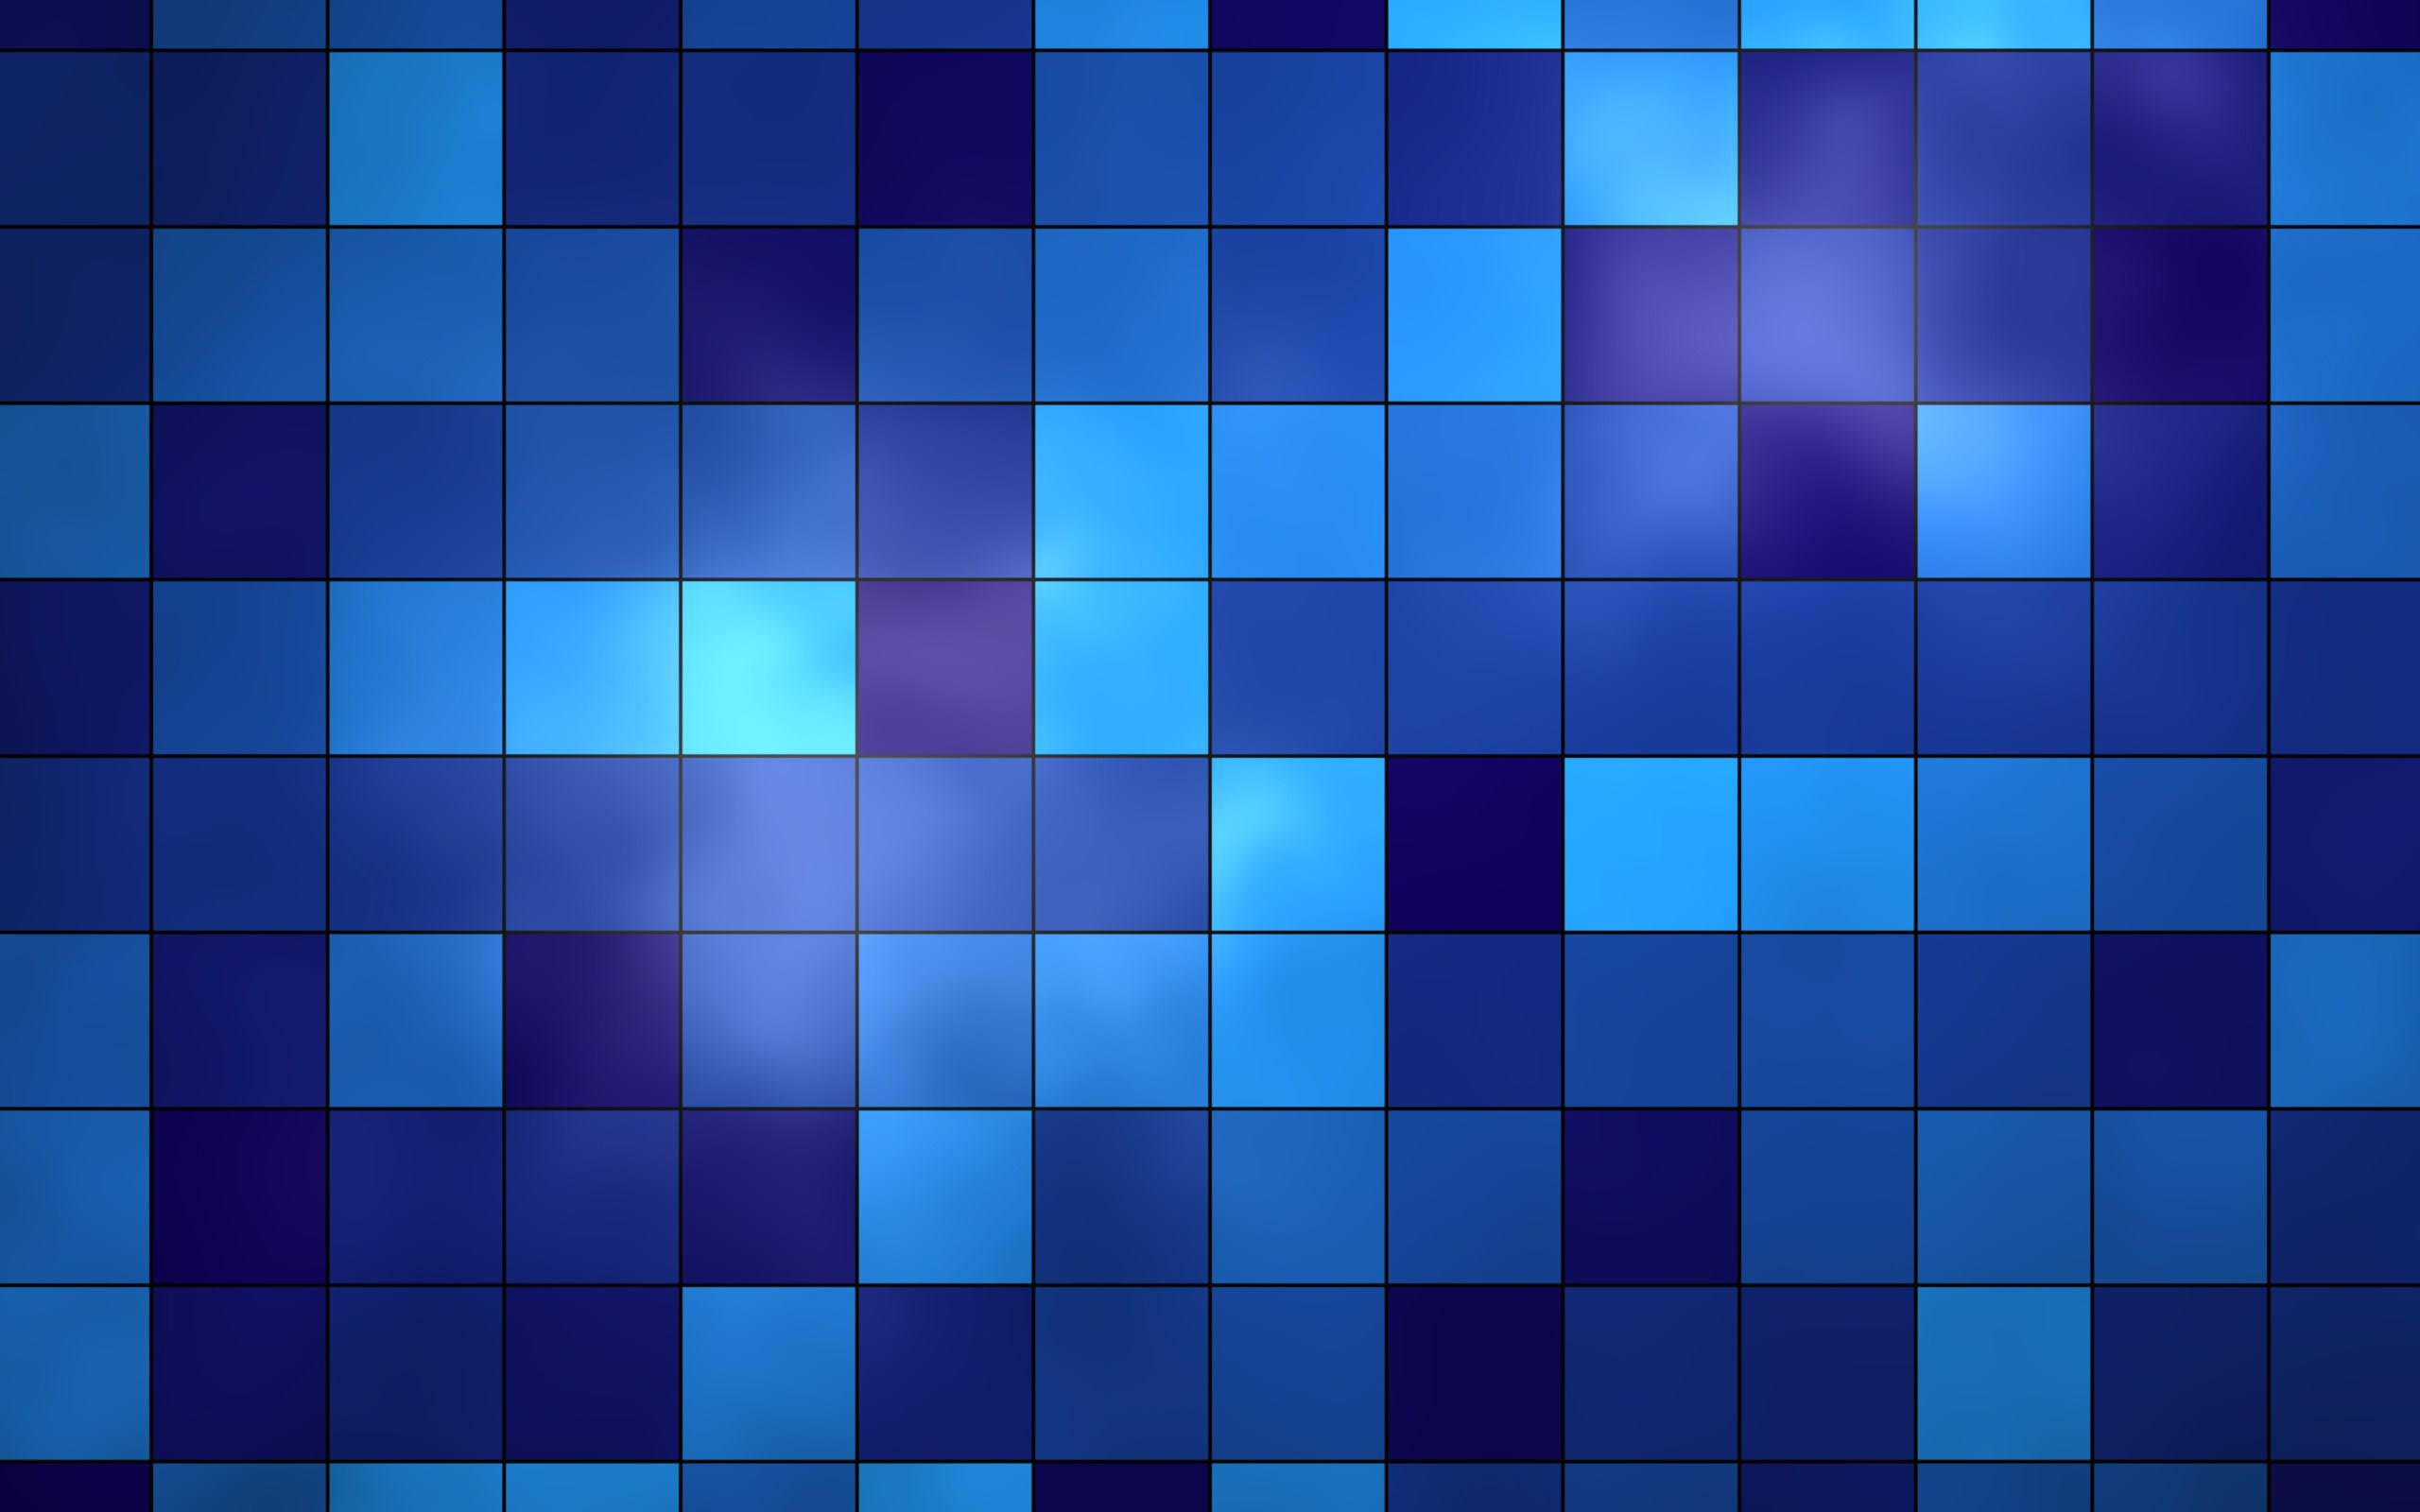 7 mosaic hd wallpapers backgrounds wallpaper abyss